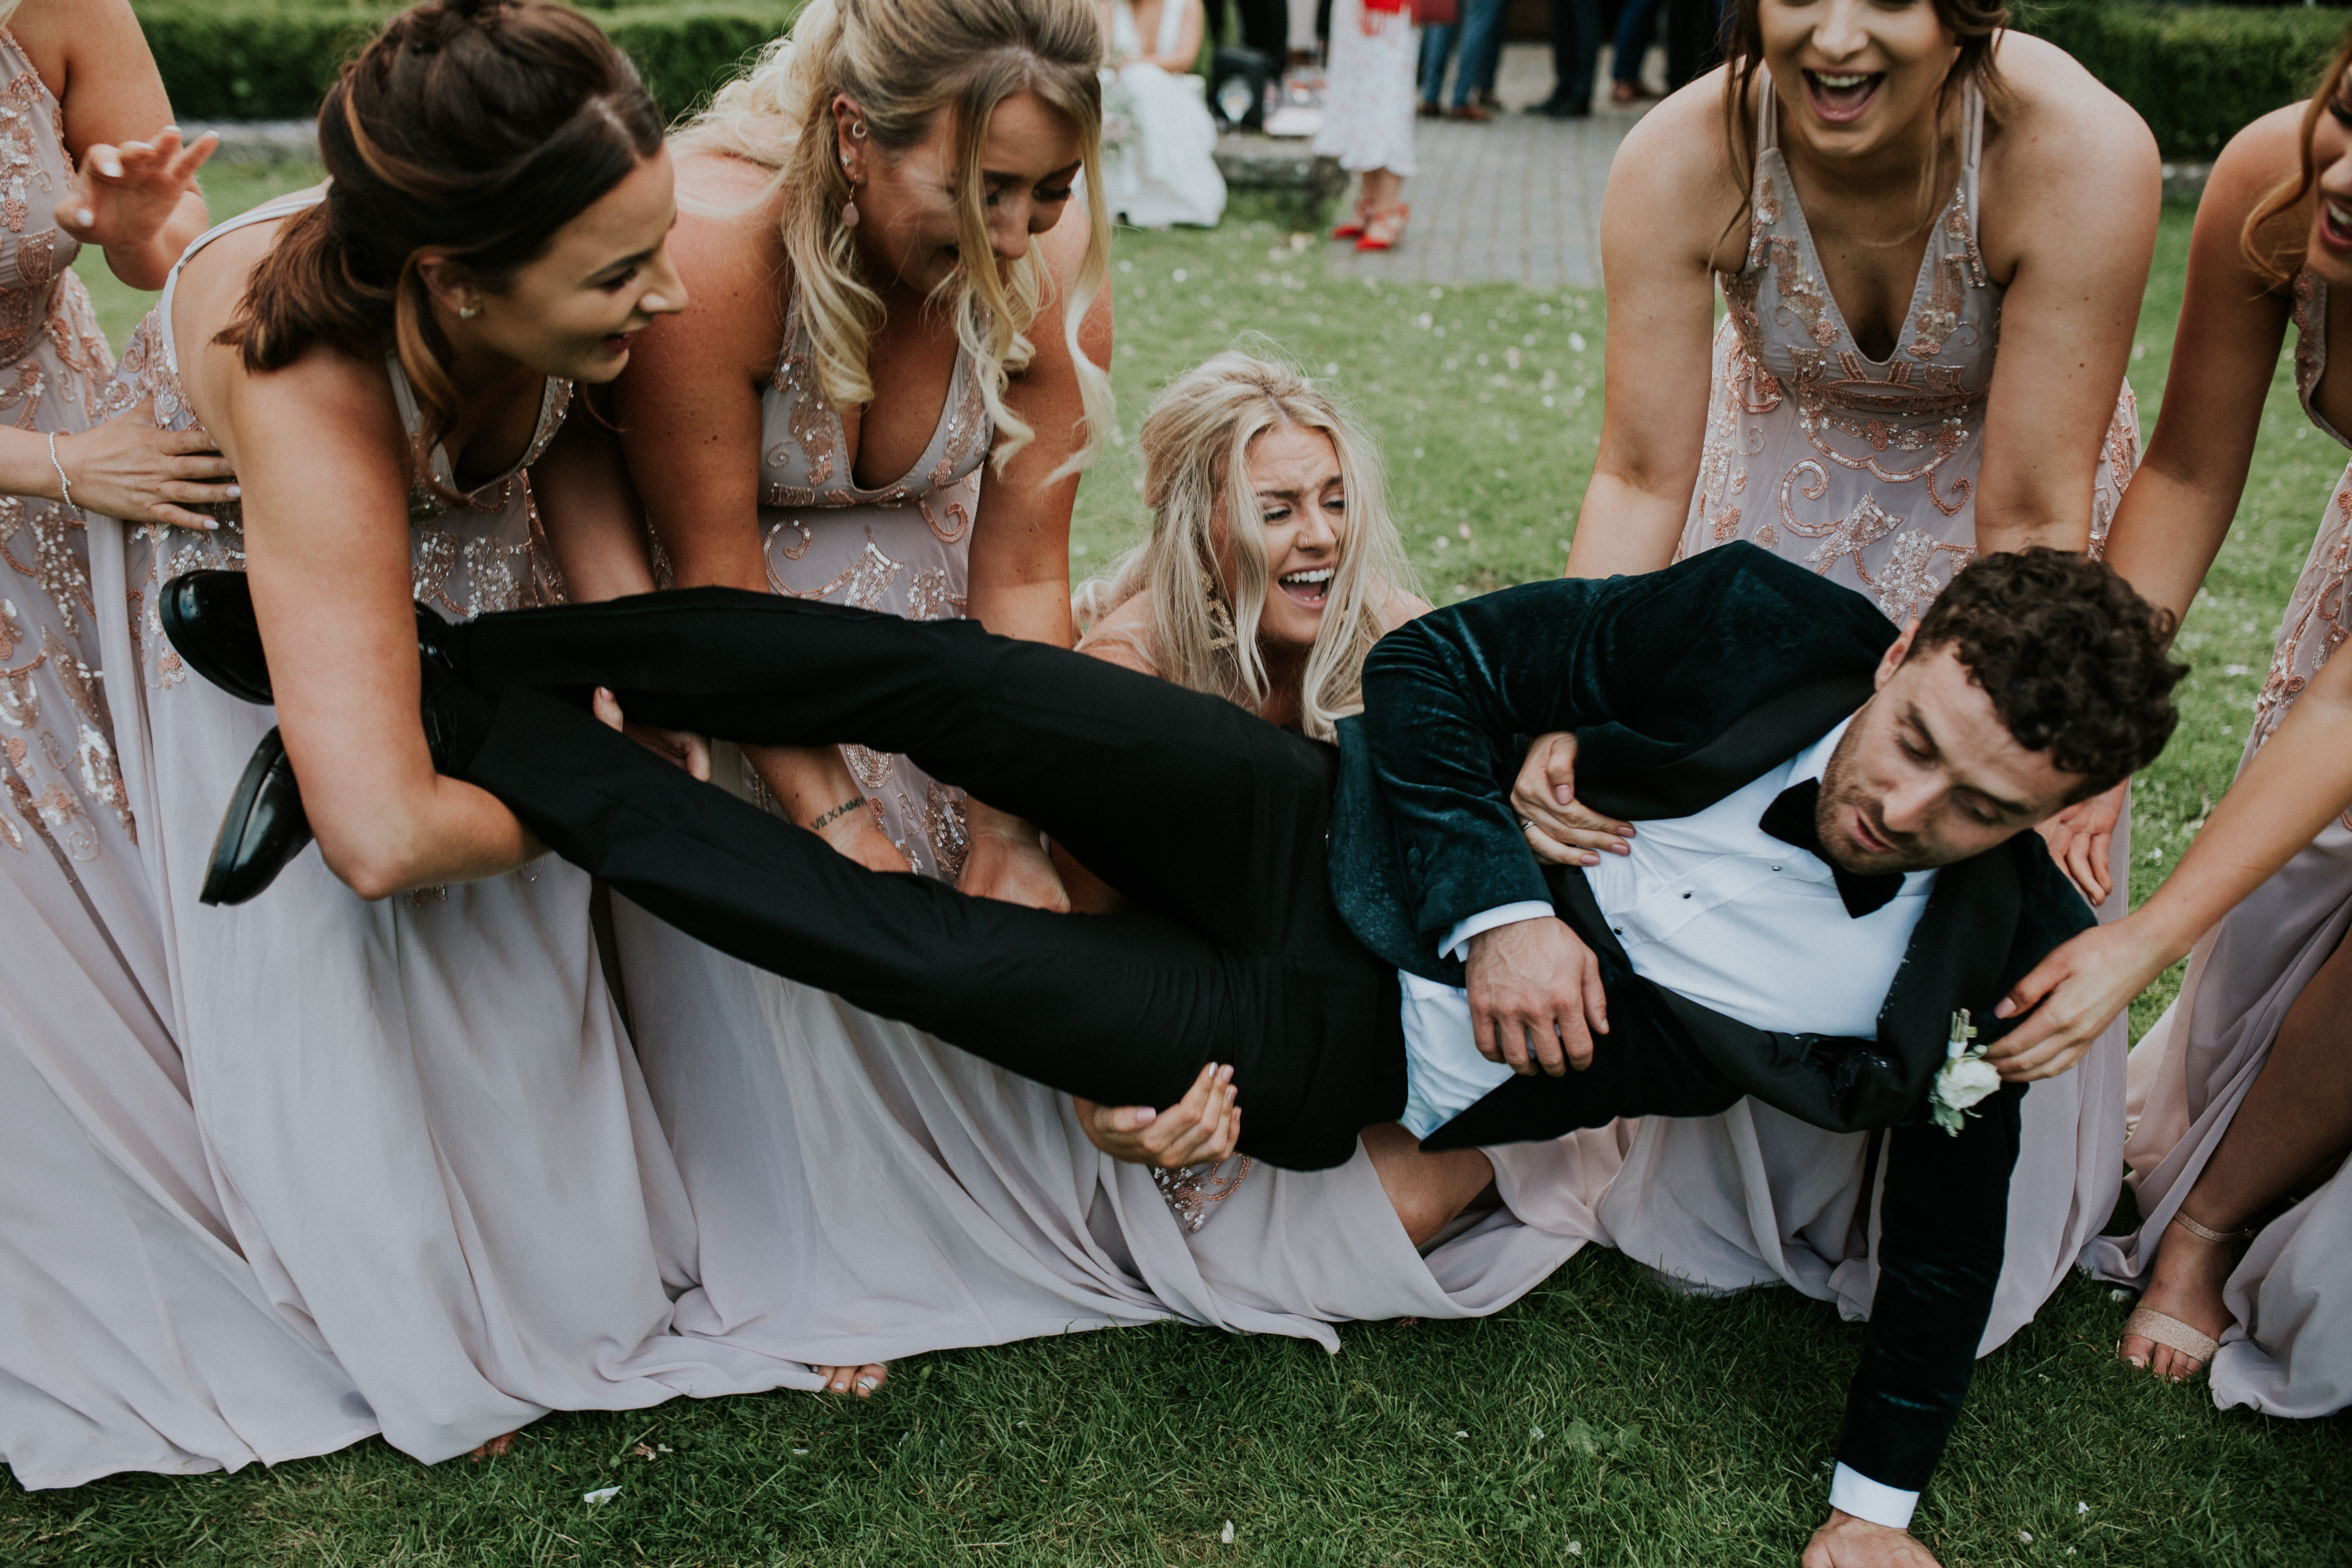 bridesmaids dropping the groom